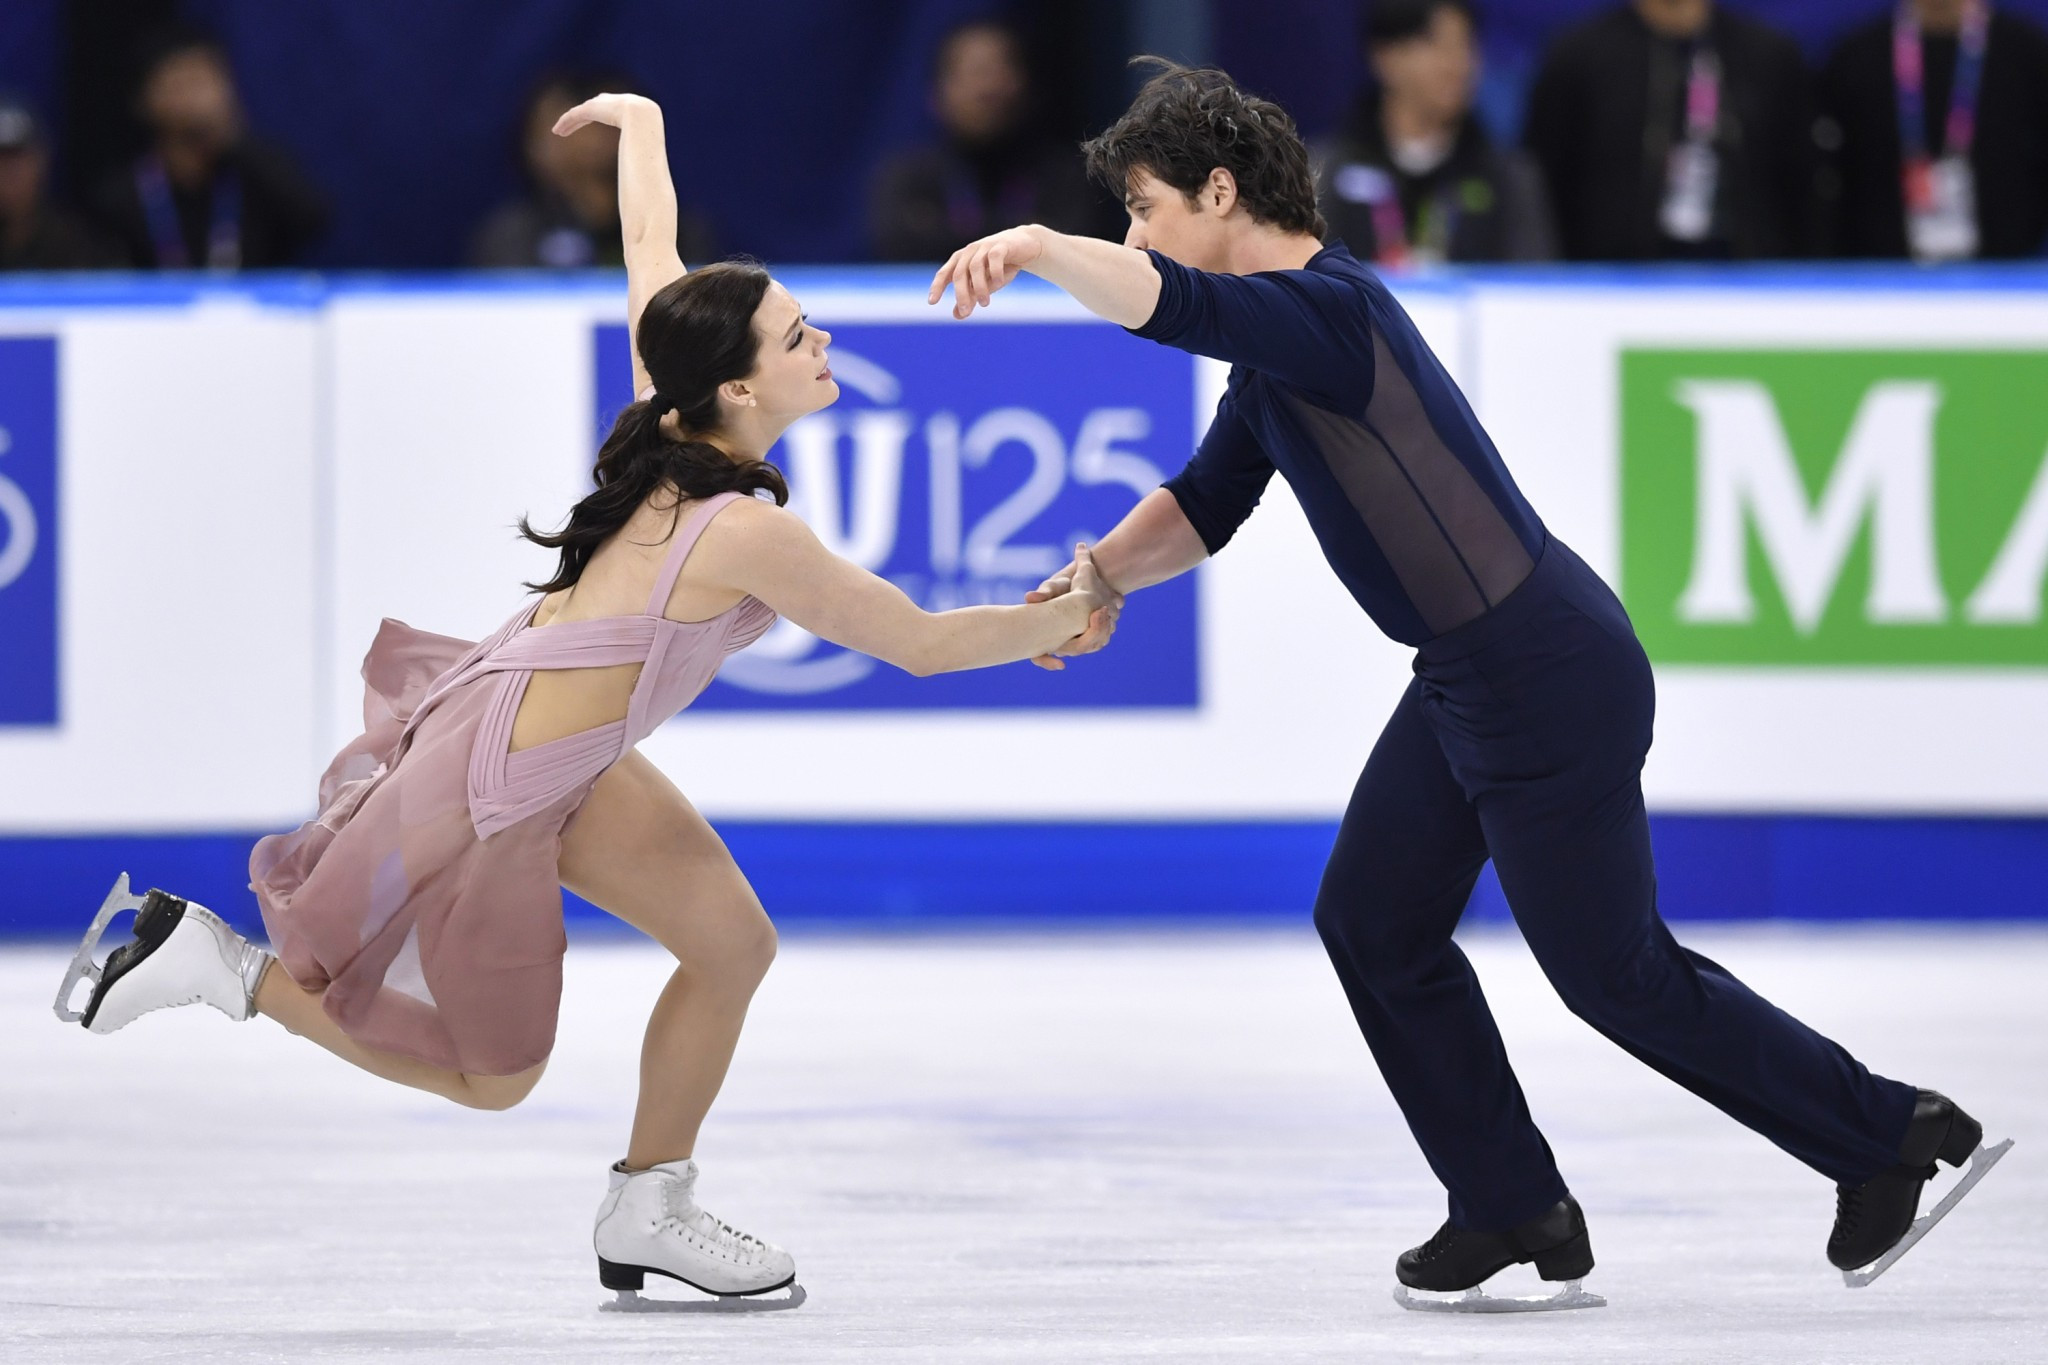 Canadian figure skaters Virtue and Moir select Moulin Rouge as Olympic-season music